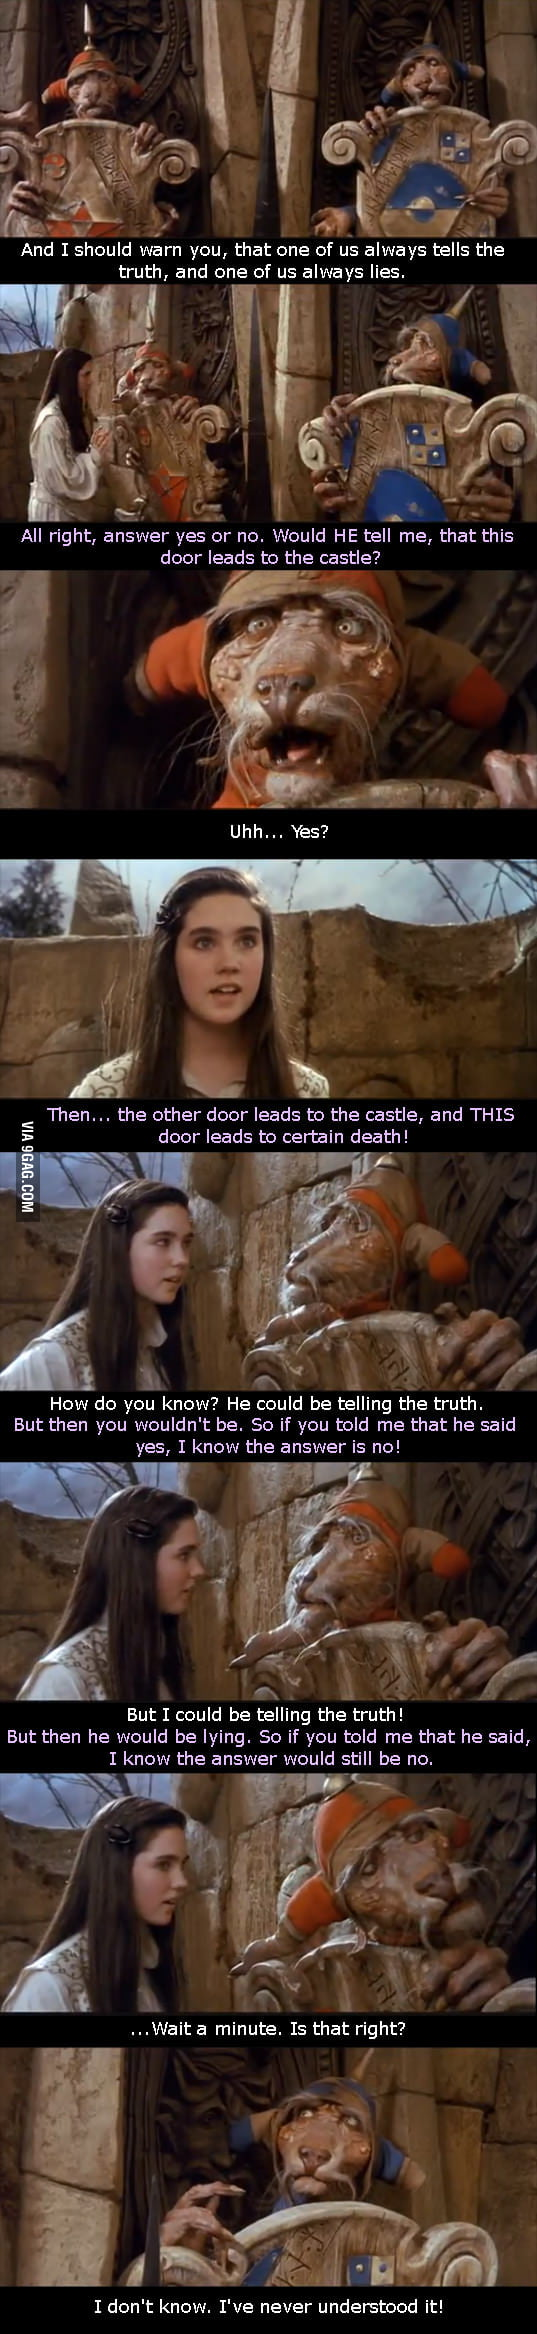 So really, which door was the liar? Mind F*cked as a kid.